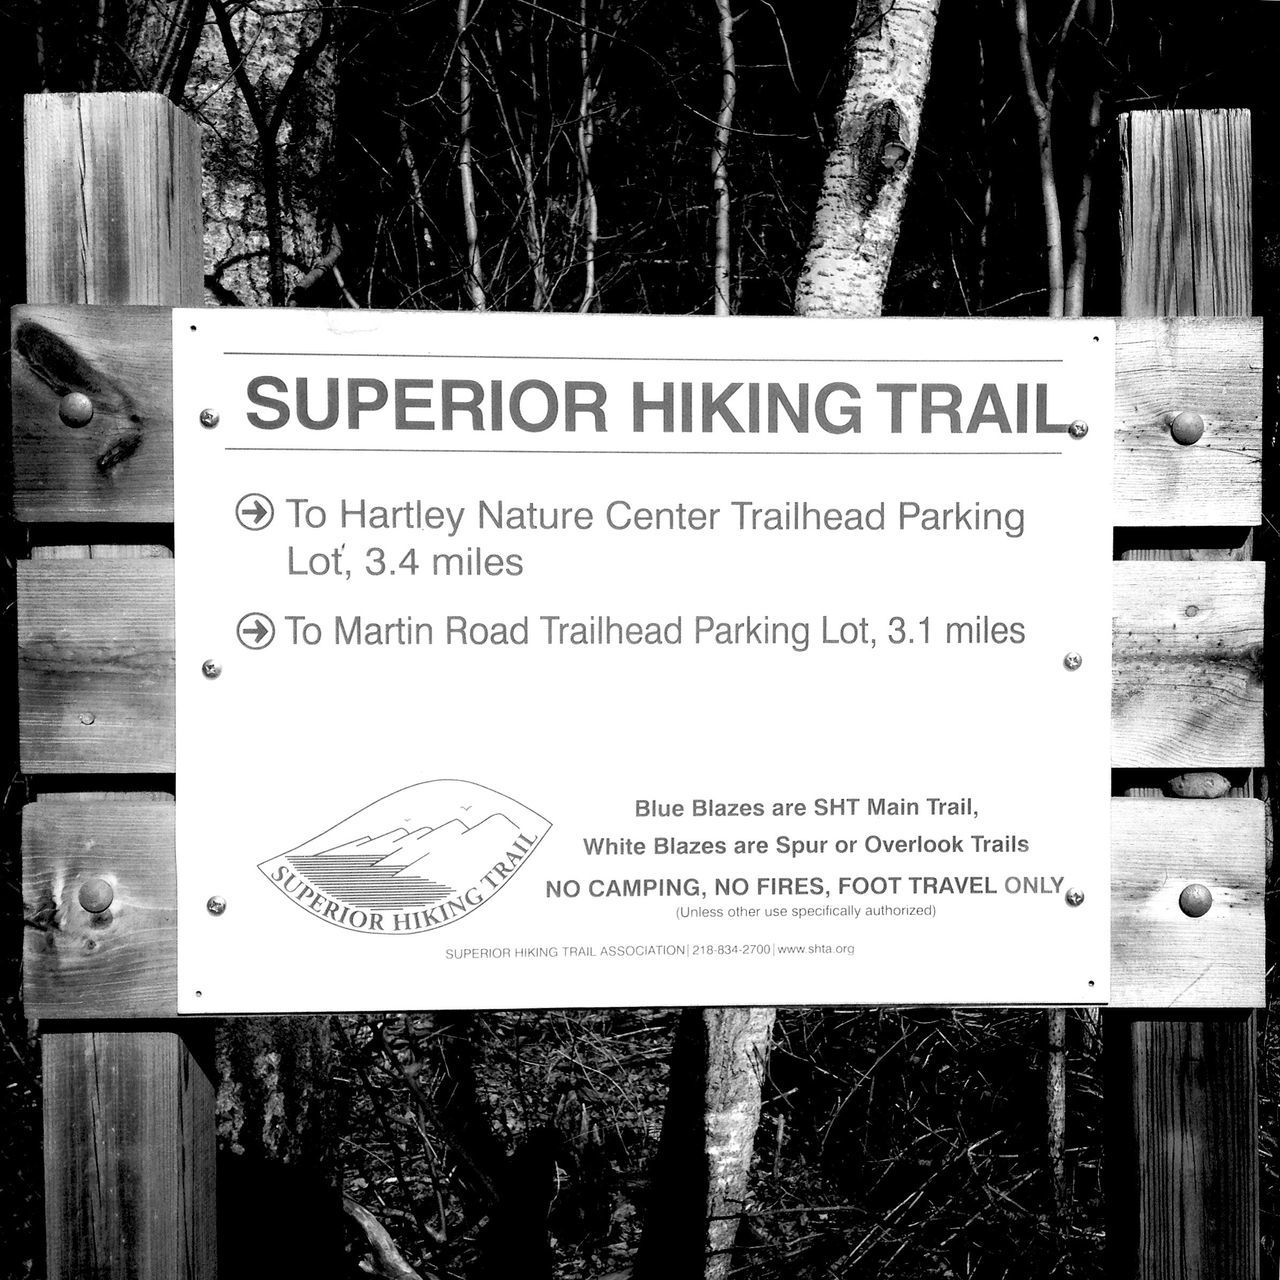 QVHoughPhoto Minnesota Duluth Lakesuperior Superiorhikingtrail Hiking Blackandwhite IPhoneography IPhone4s